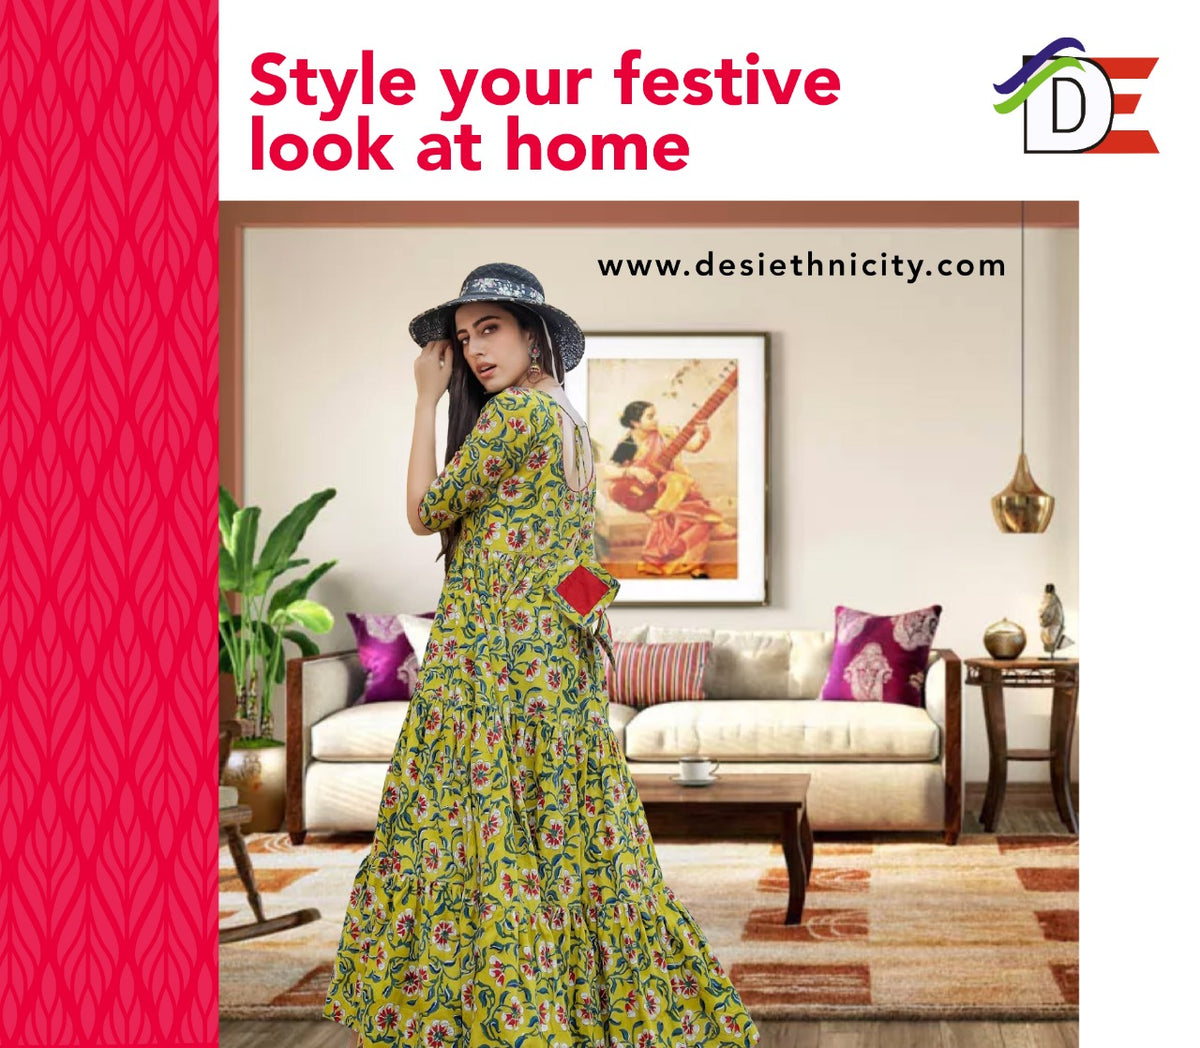 Style your festive look at home